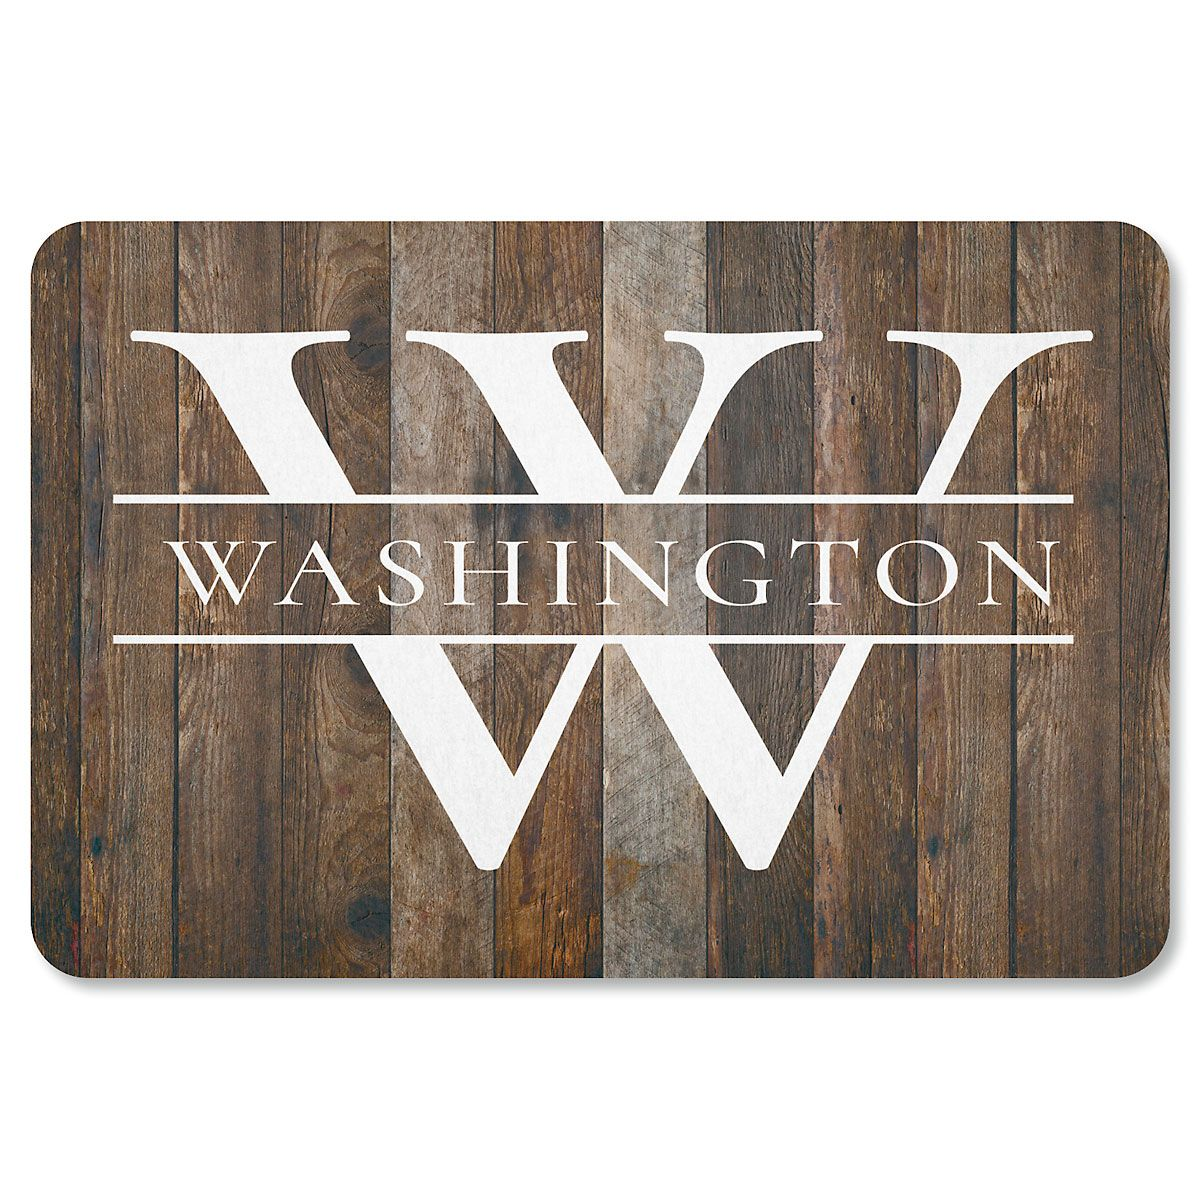 Wood-Grain Personalized Doormat